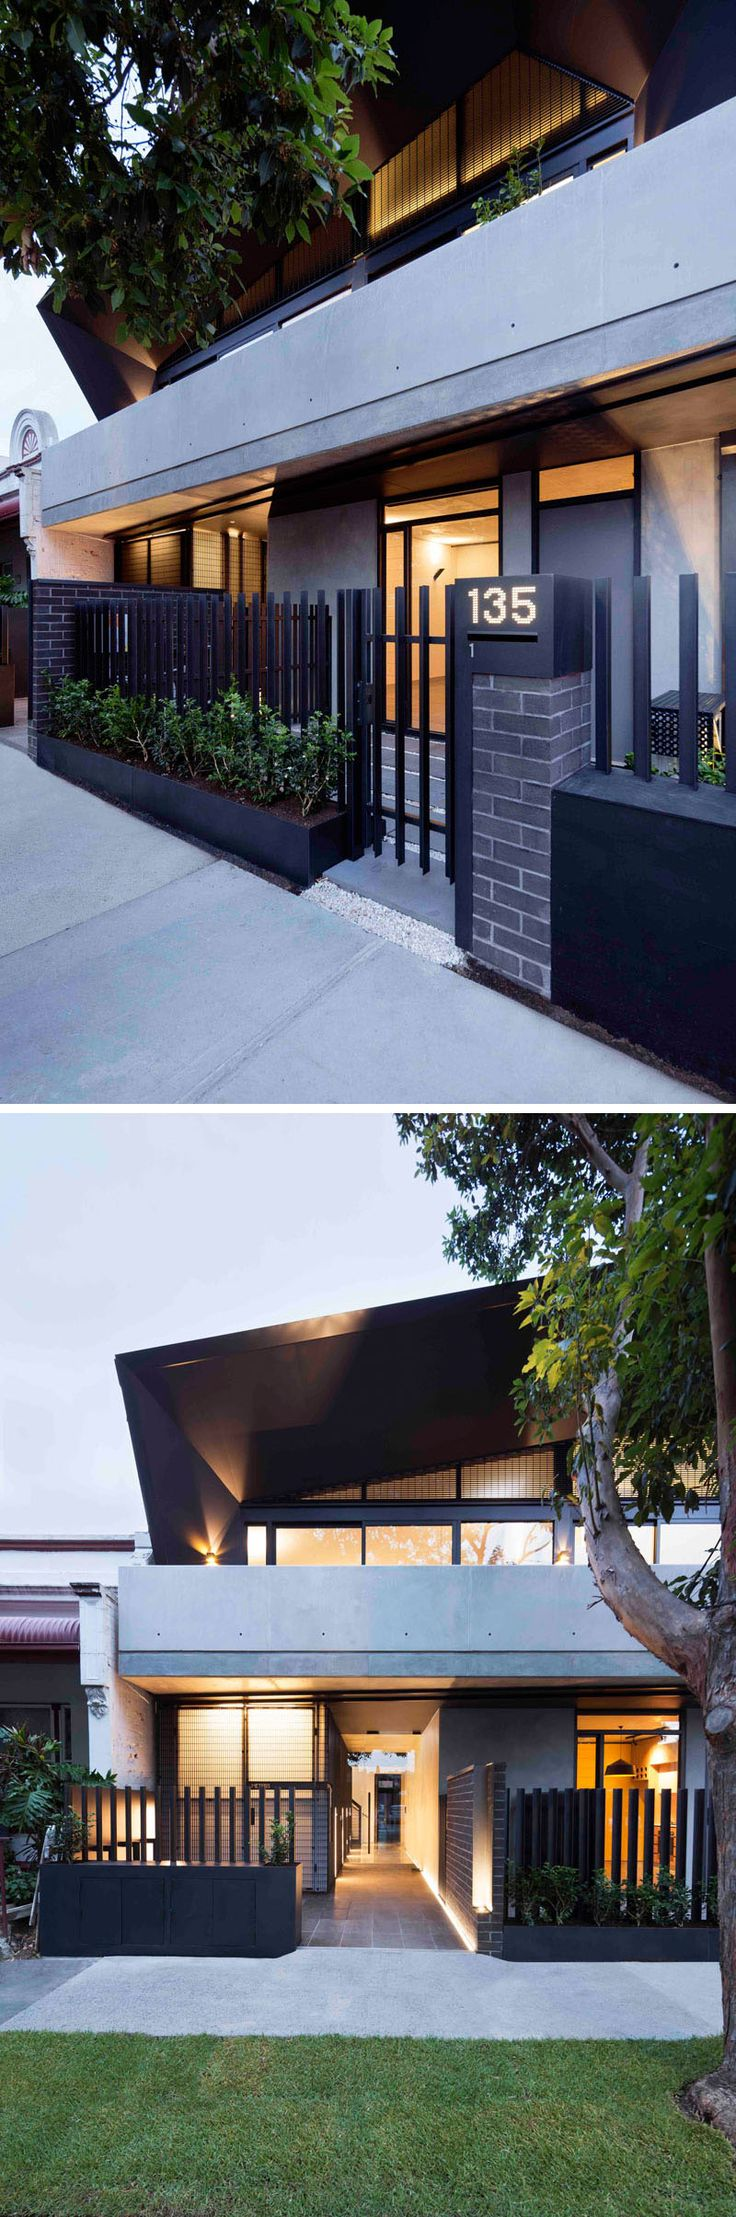 This modern apartment building has a black fence positioned behind planters that add a touch of greenery to the brick and concrete facade.